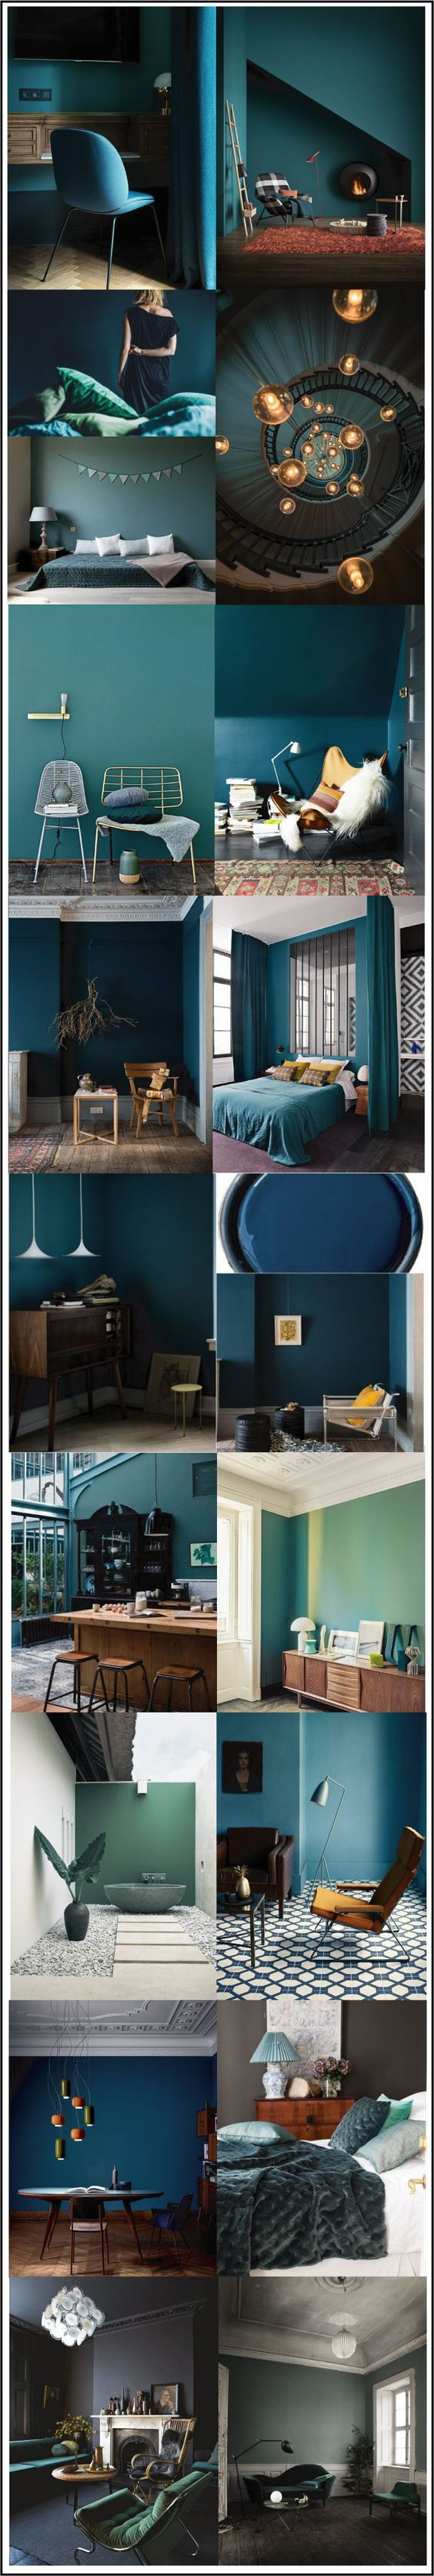 nuances de bleu vert vert balsam bleu p trole bleu. Black Bedroom Furniture Sets. Home Design Ideas